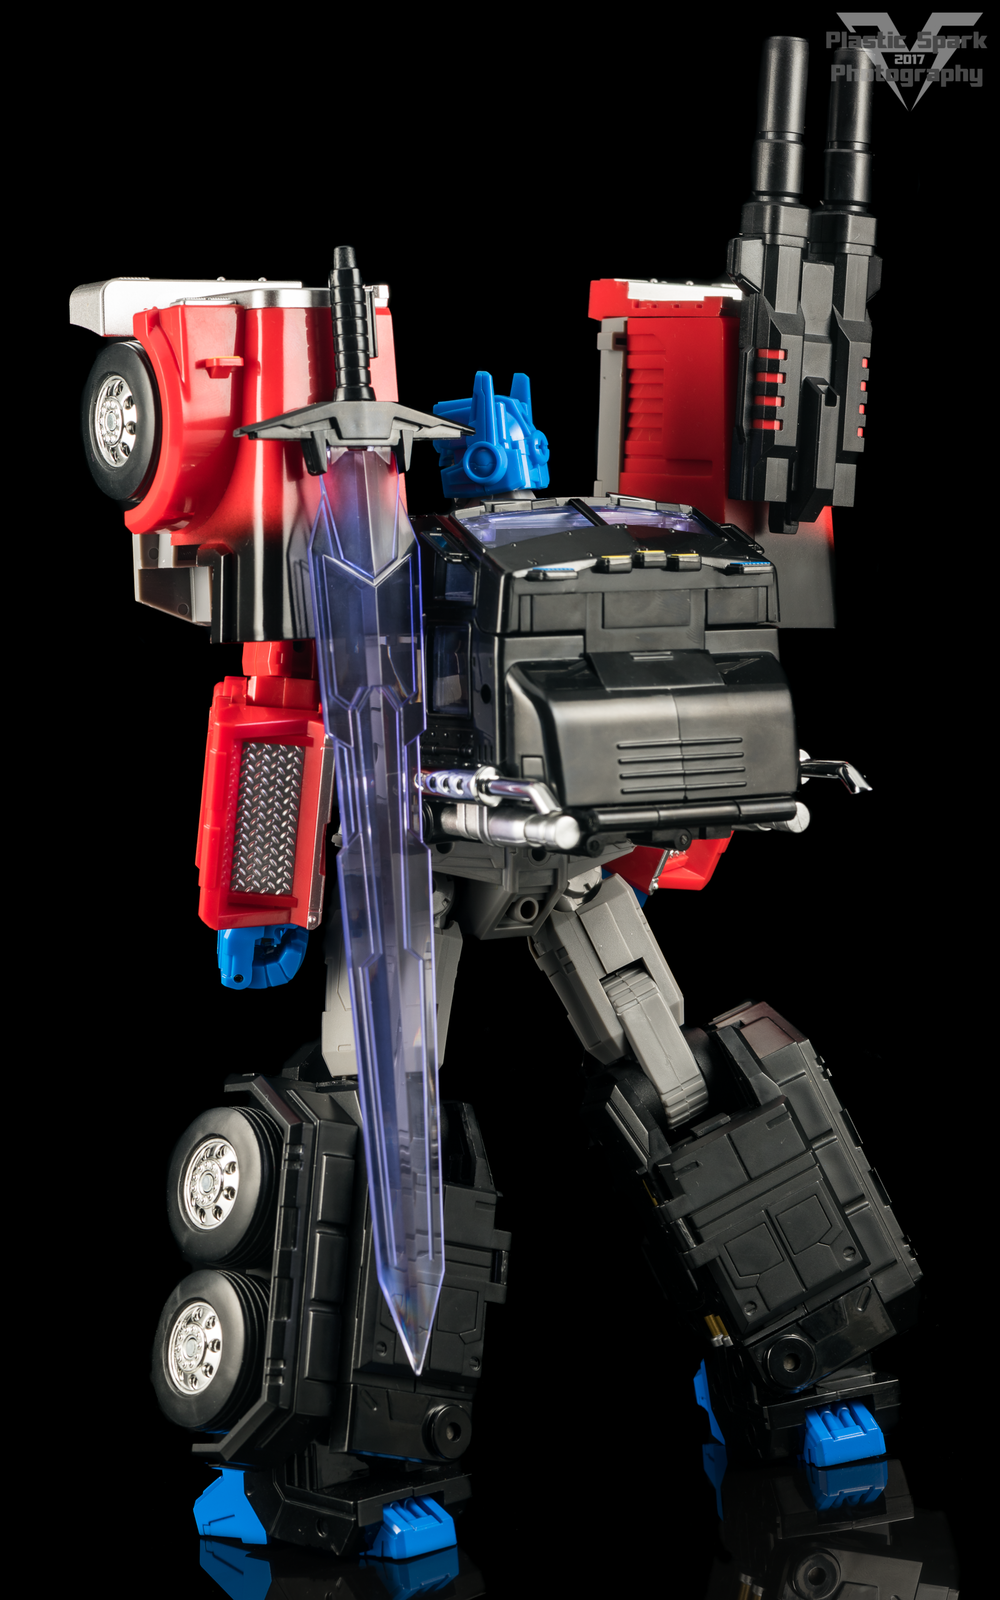 Fans-Hobby-MB-04-Gunfighter-II-(41-of-61).png